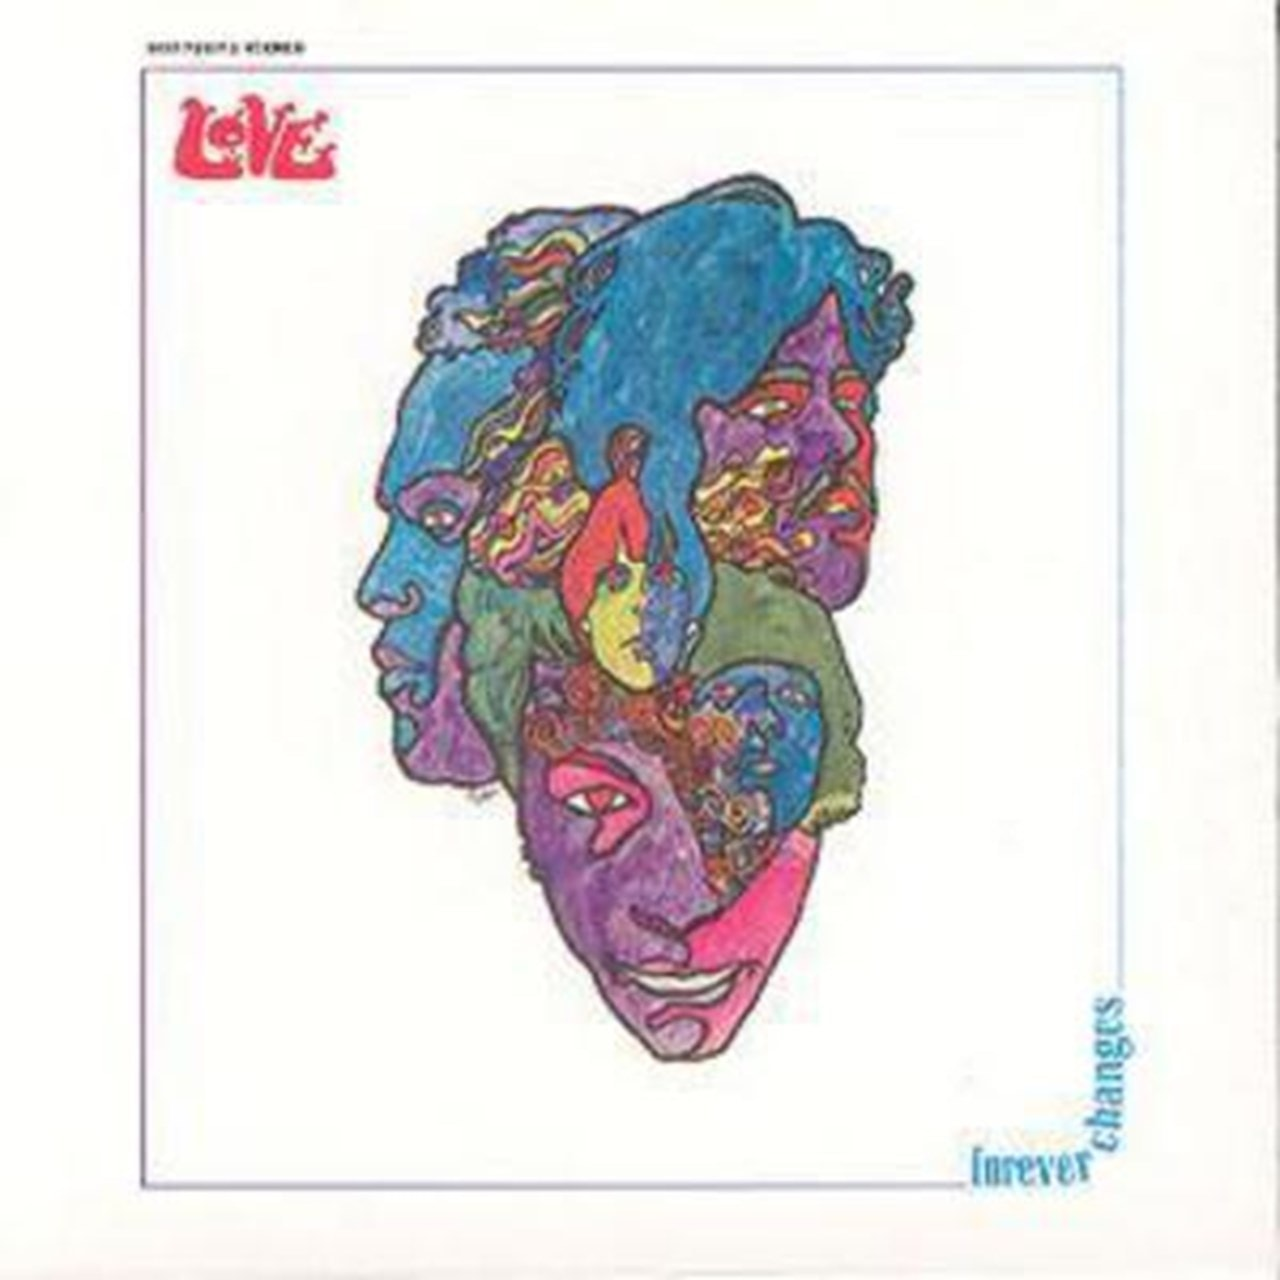 Forever Changes - 1